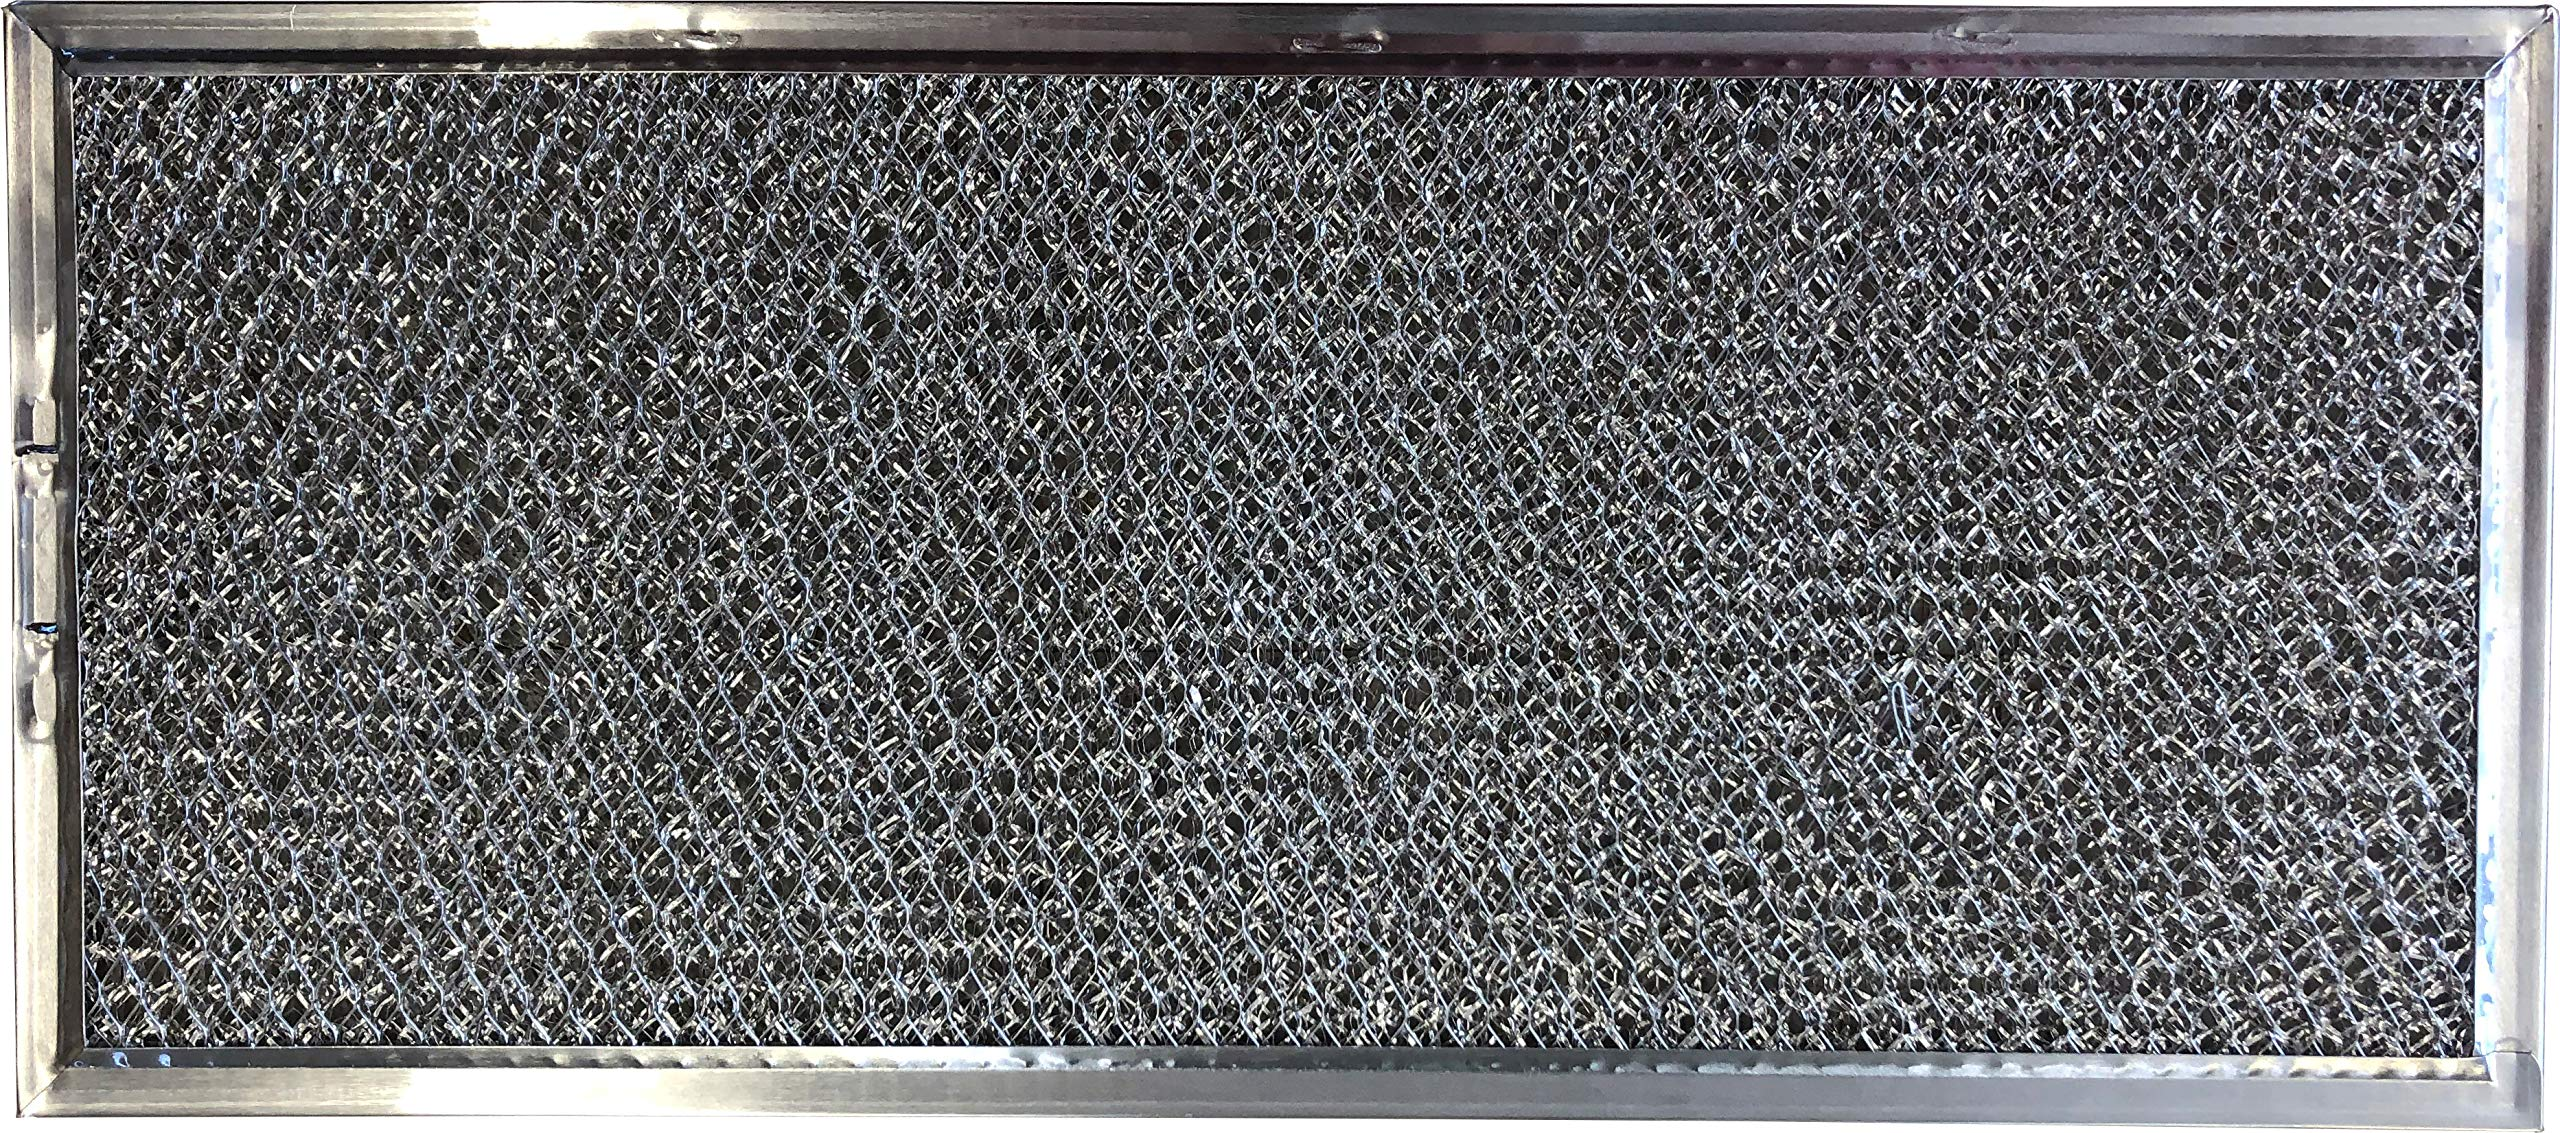 Replacement Aluminum Range Filter Compatible With GE WB02X1666, GE WB2X1666, Imperial Cal GE 1000,G